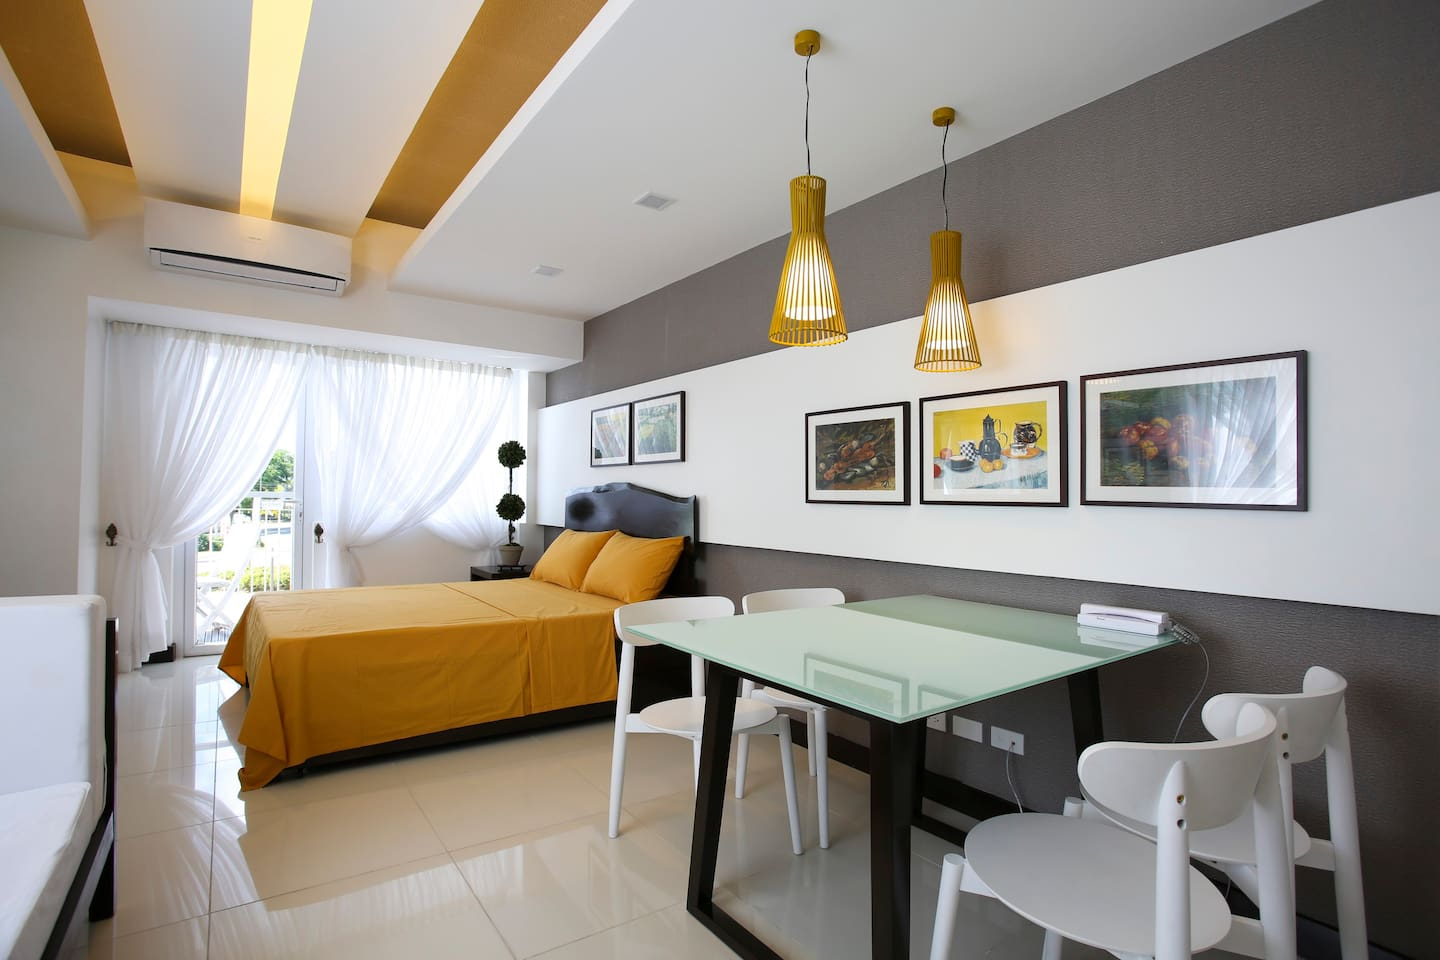 Wide Room Space 41.71 sqm in floor area